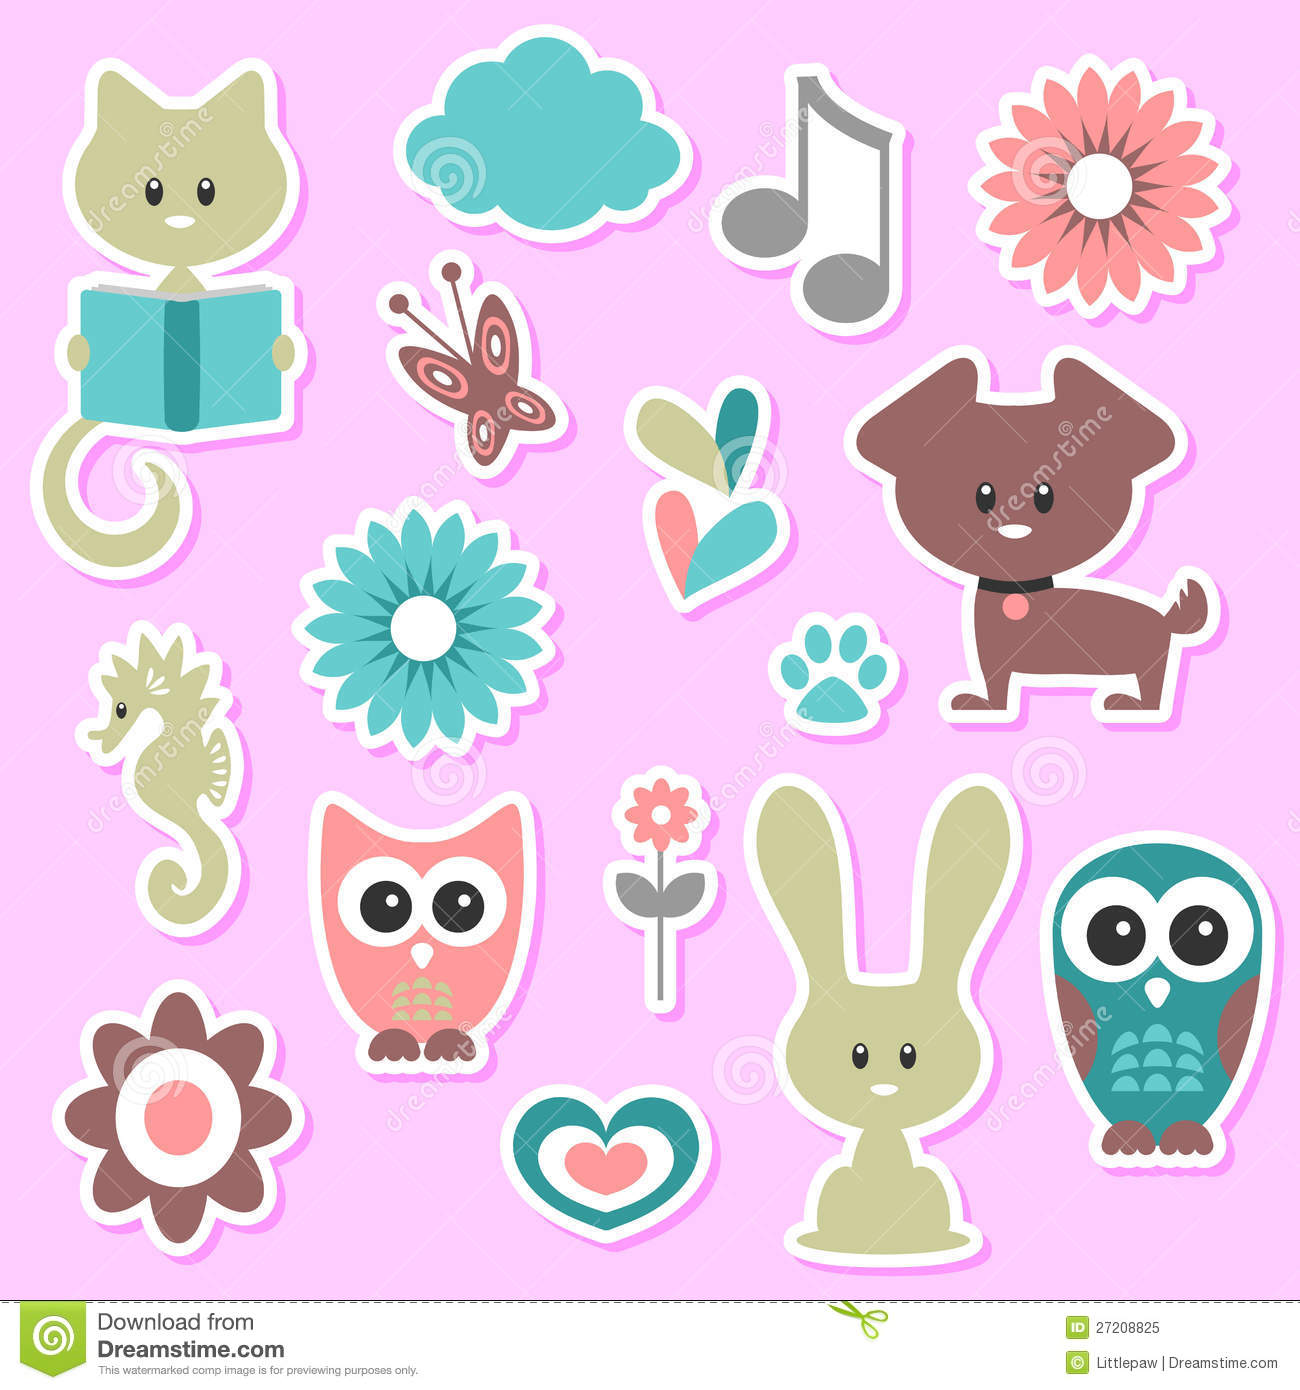 photo booth background ideas - Babyish Cute Stickers Set Royalty Free Stock Image